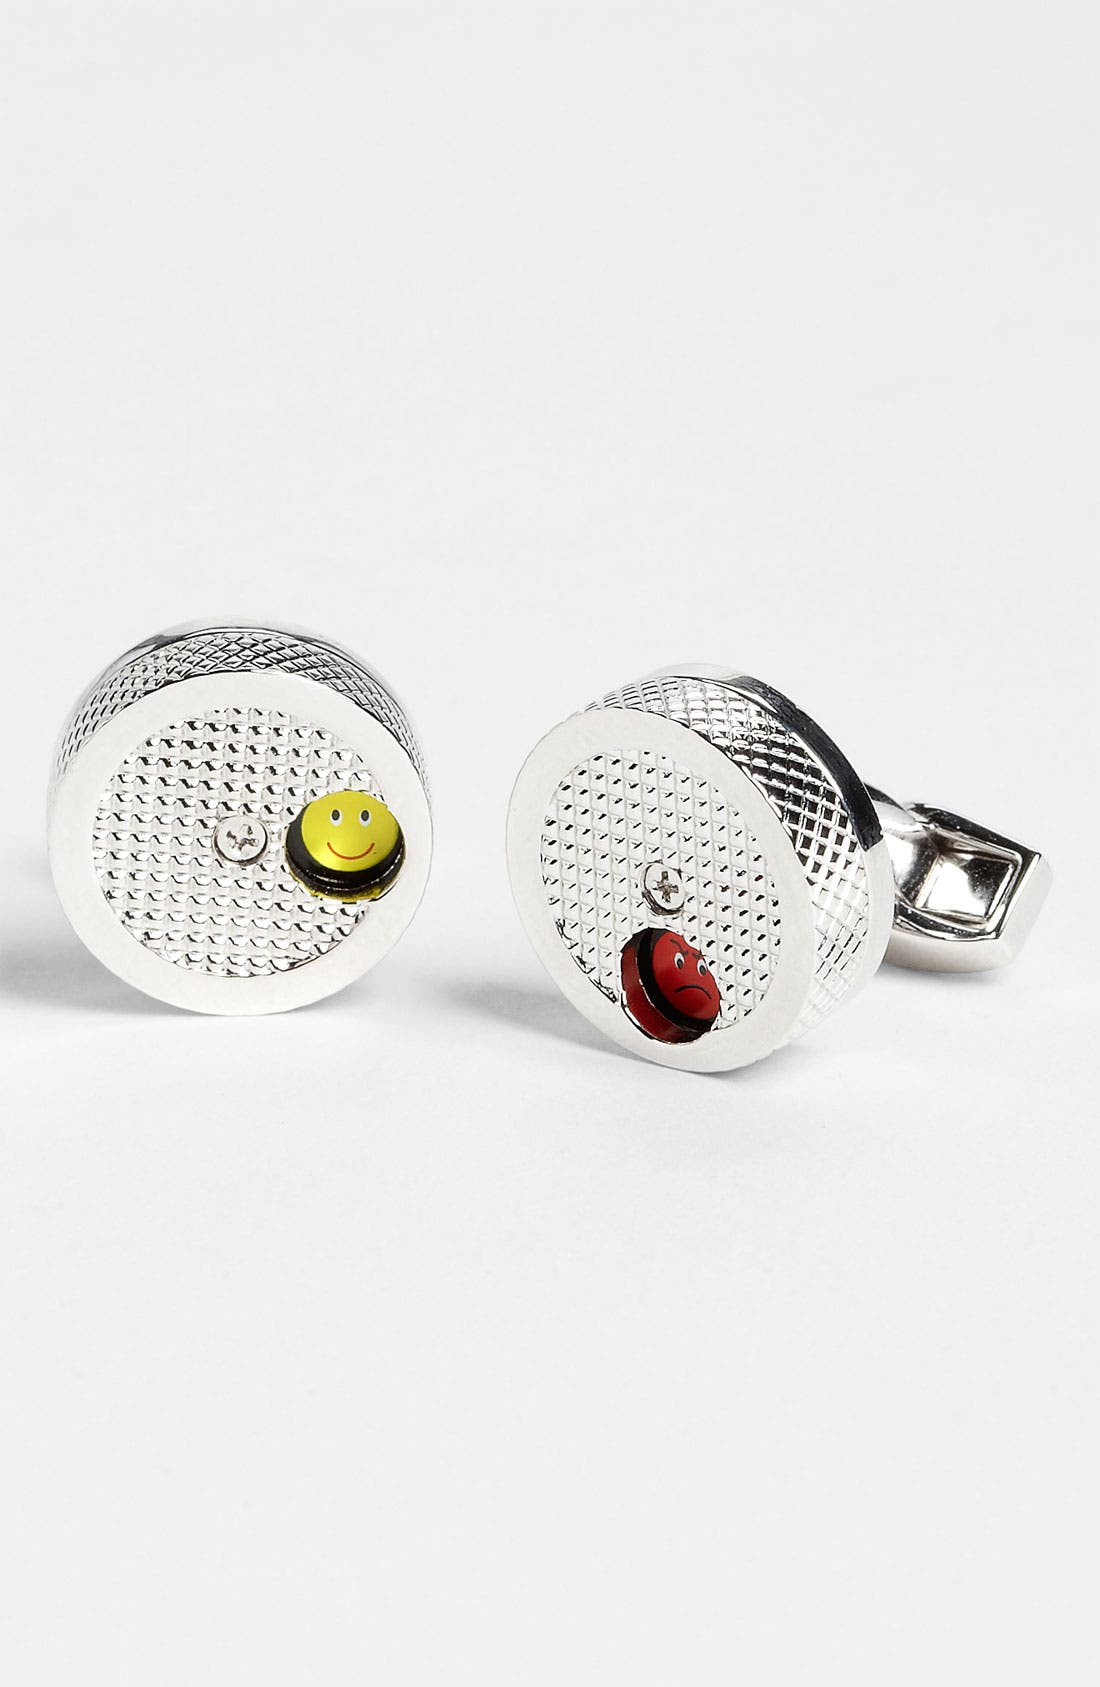 Main Image - Tateossian 'Mood' Cuff Links